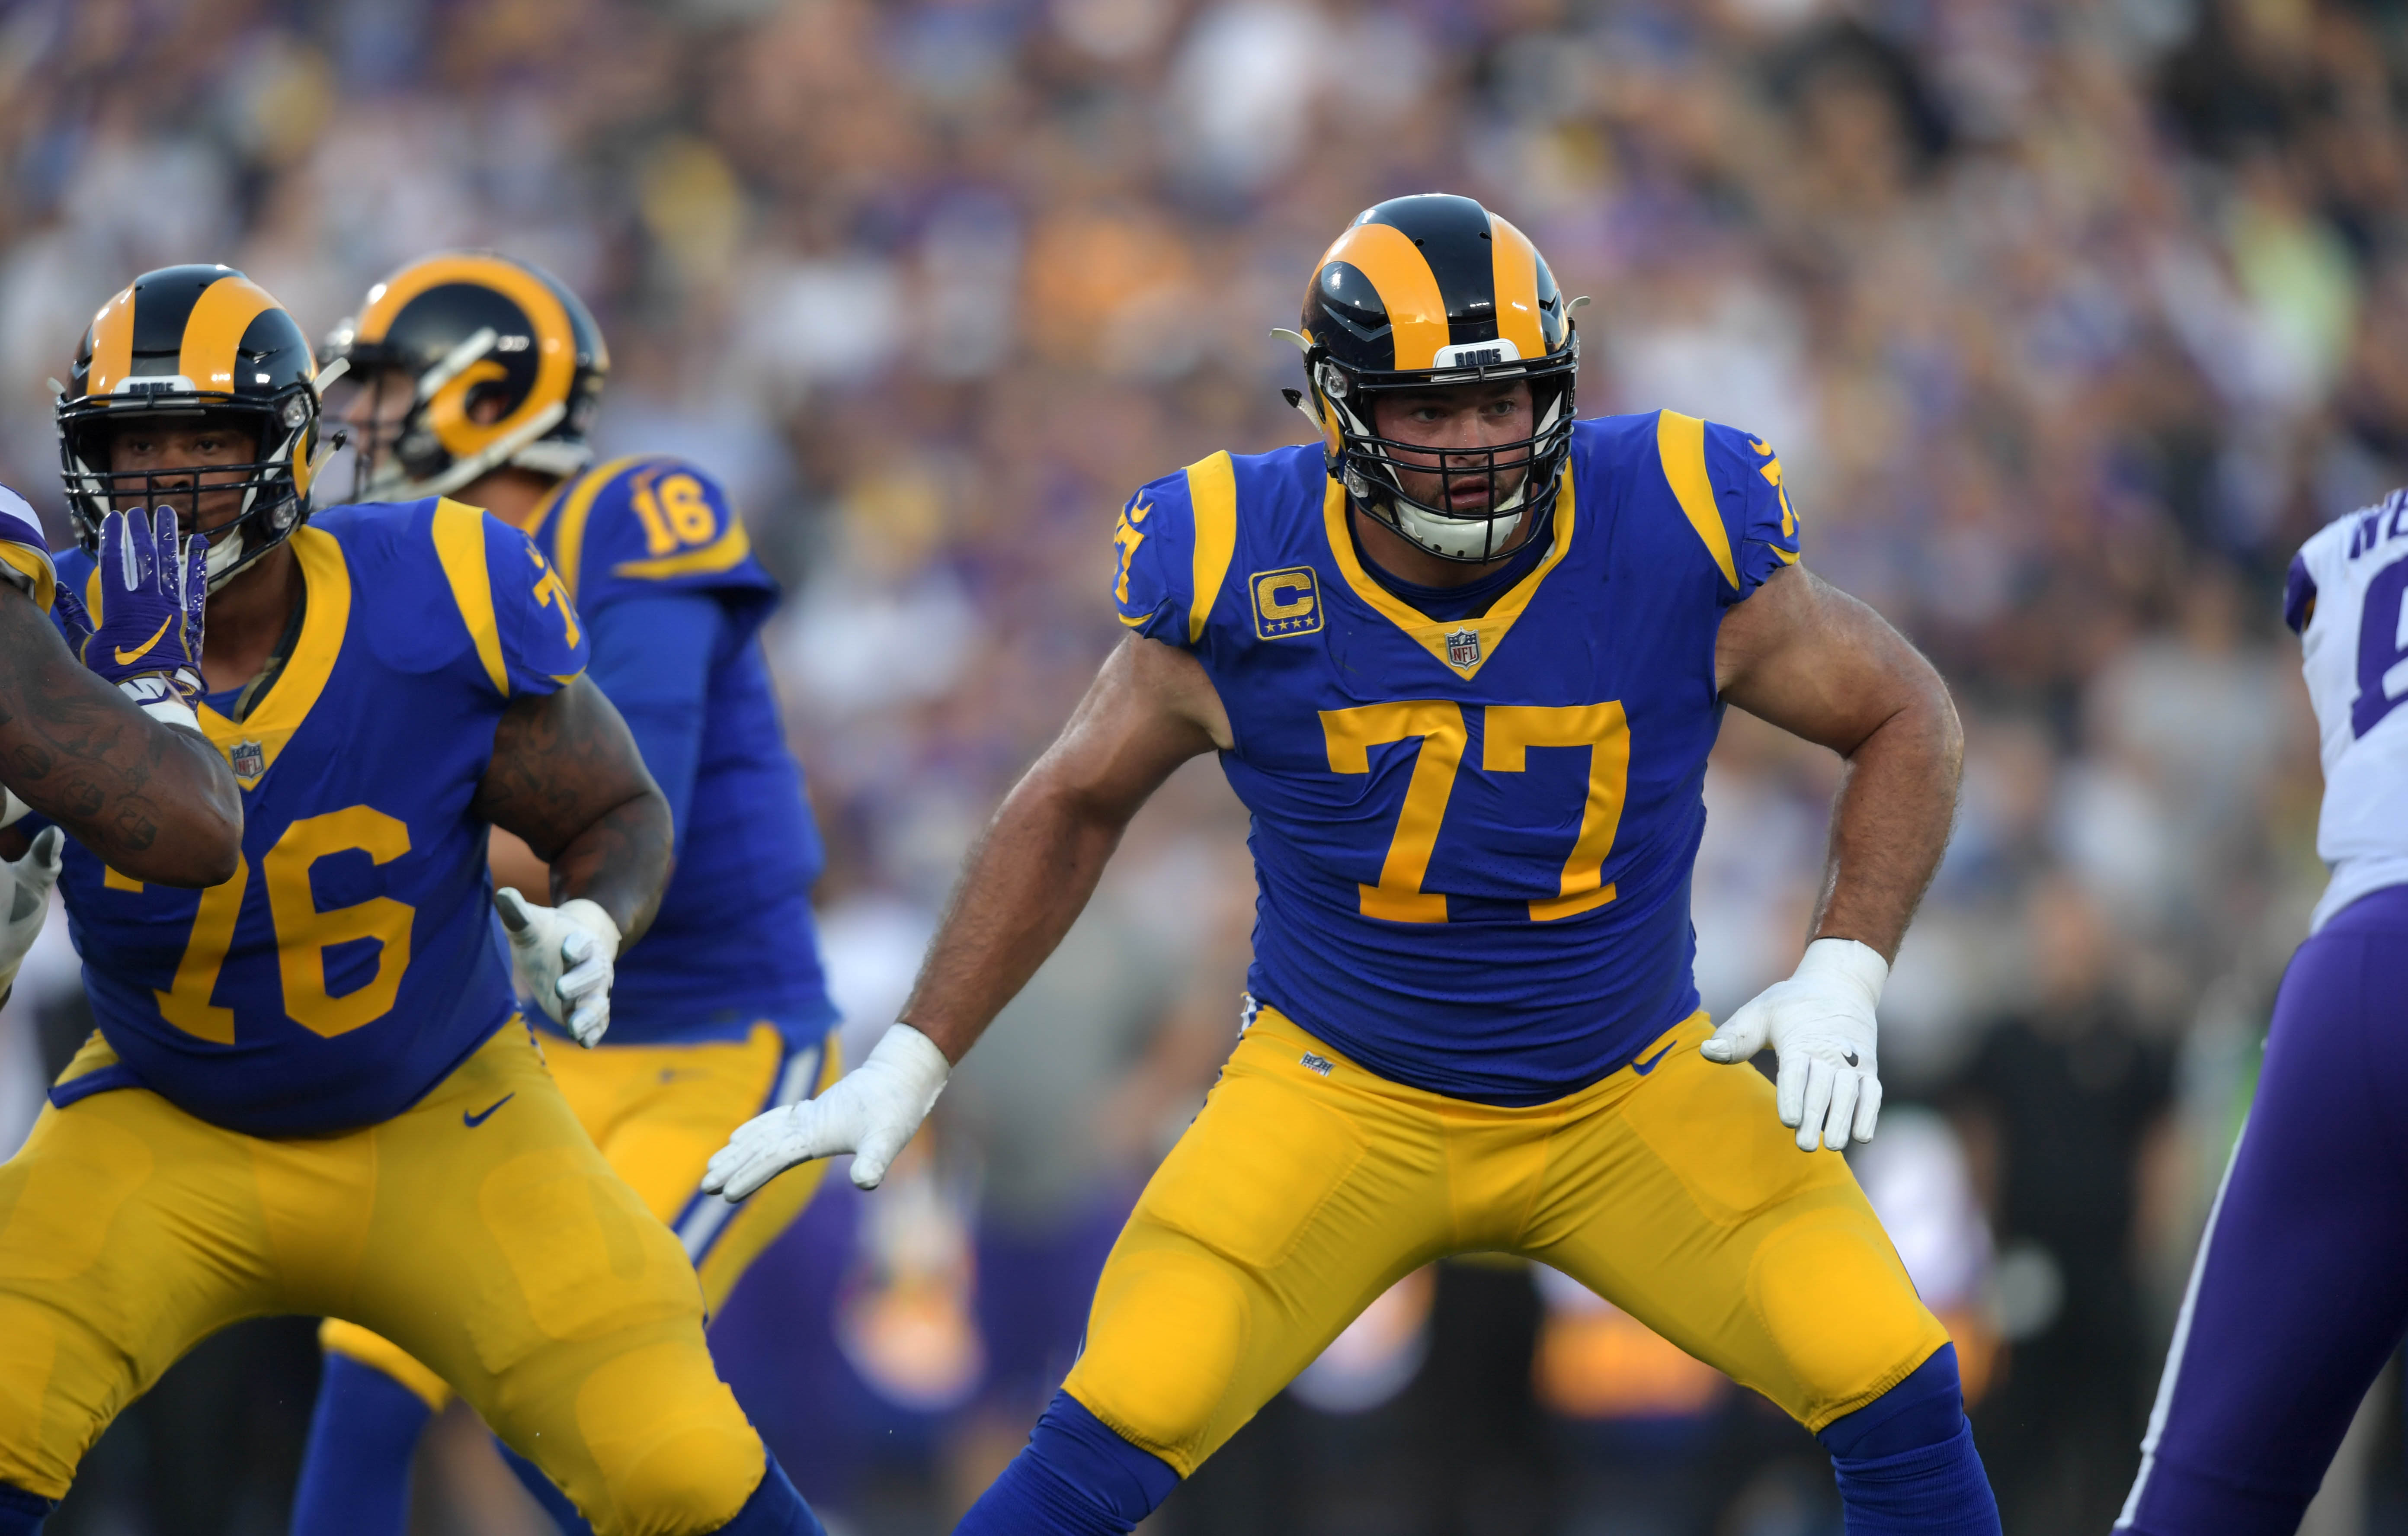 Rams tackle Andrew Whitworth donated his entire game check to victims of the Thousand Oaks shooting